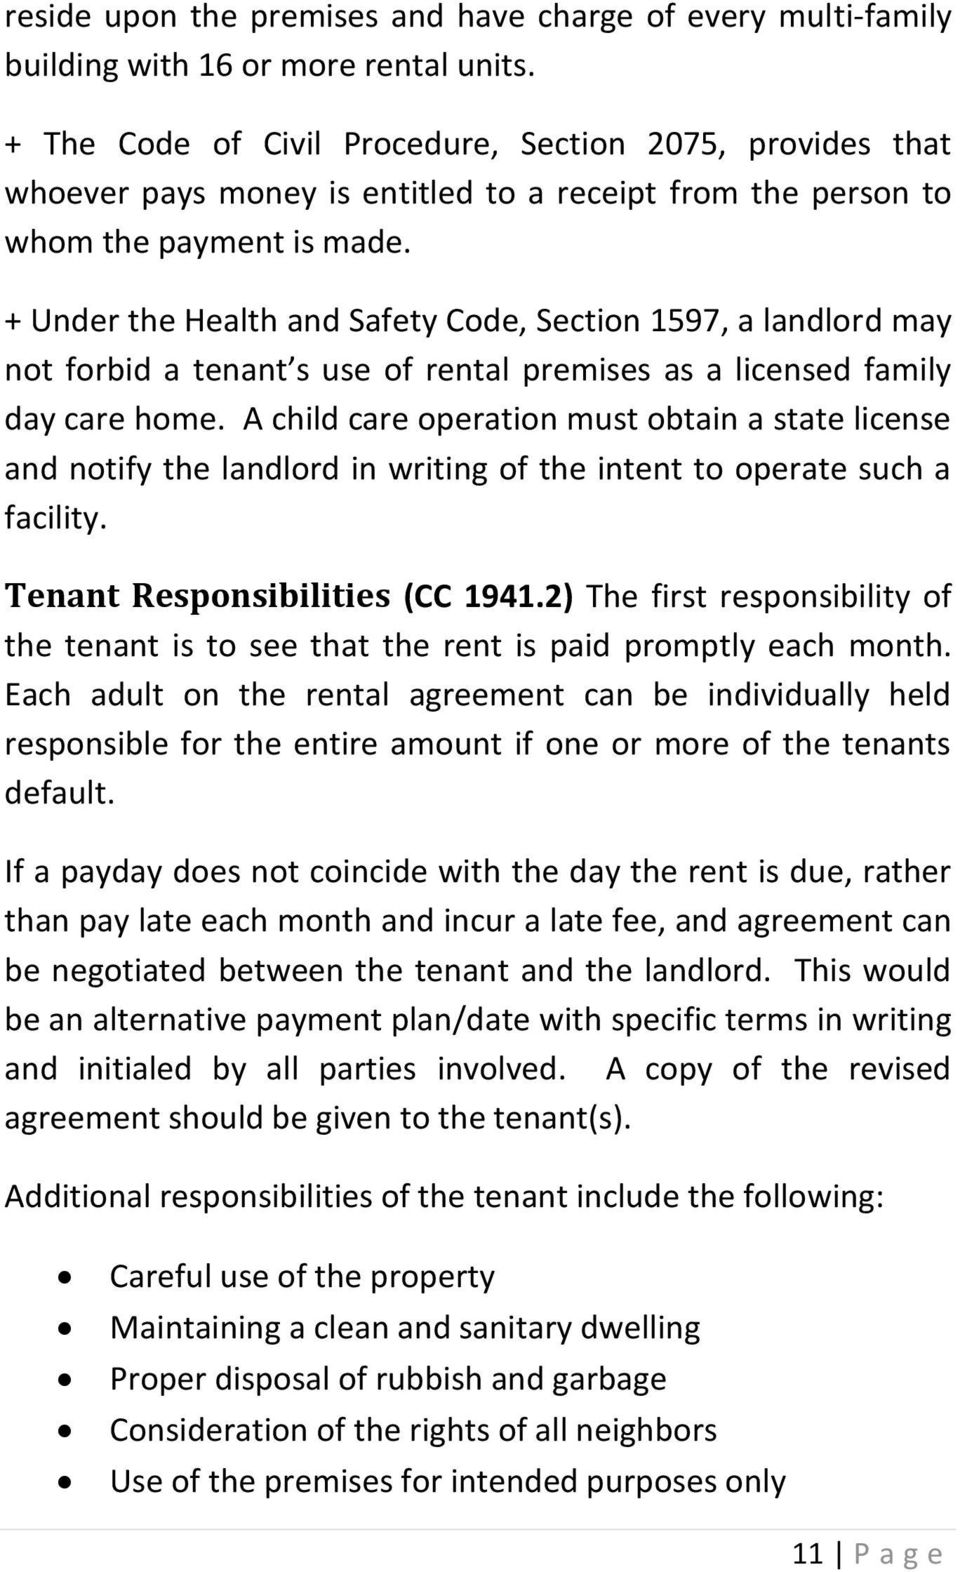 + Under the Health and Safety Code, Section 1597, a landlord may not forbid a tenant s use of rental premises as a licensed family day care home.